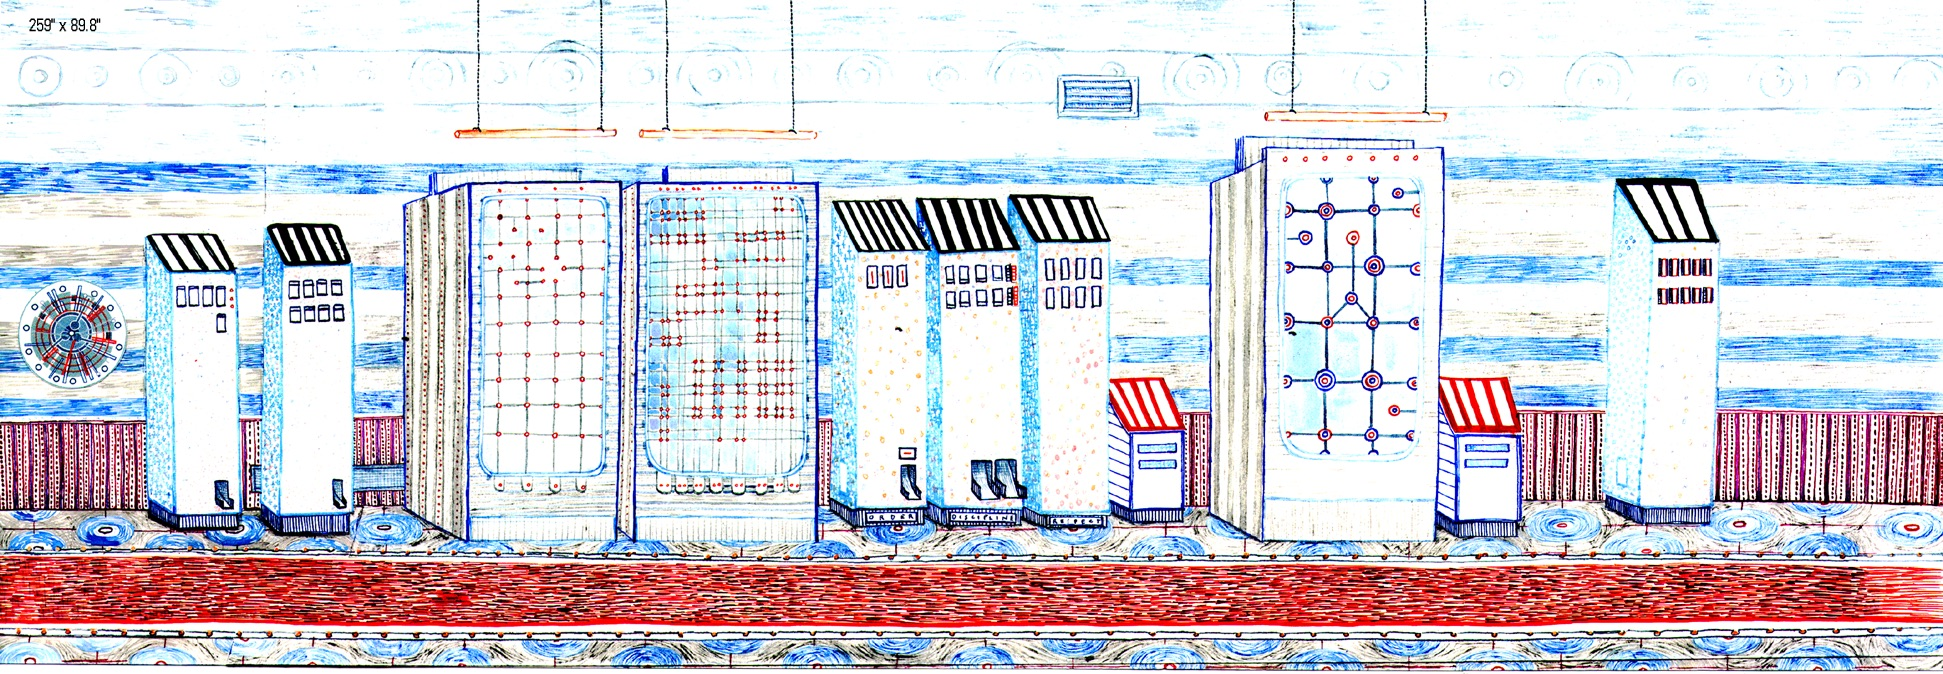 "Vending machines. 2002  Ink on paper. 16"" x 7"""